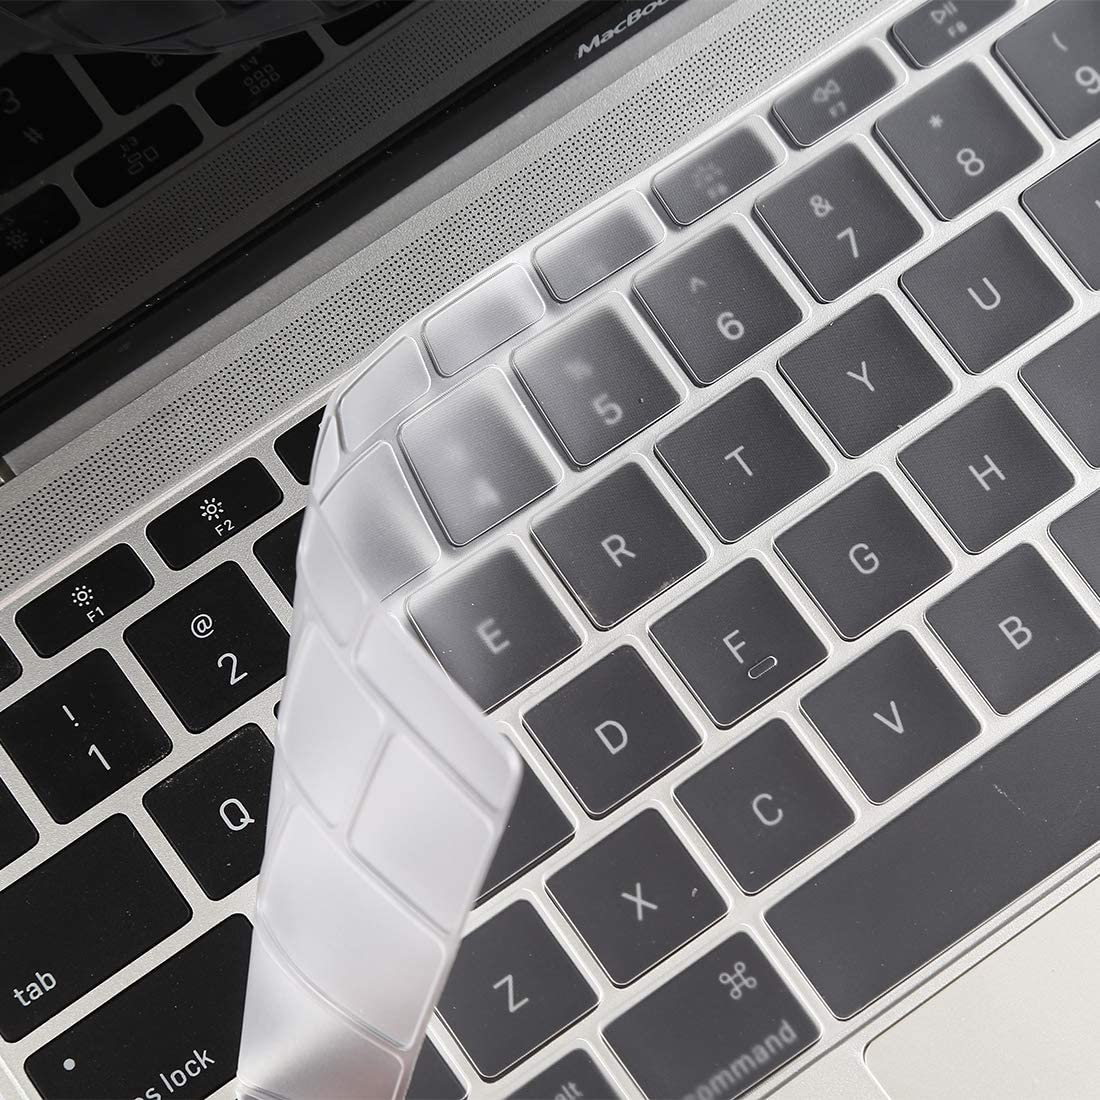 A1534 // A1708 Color : Black Black CellphoneMall Protectors Keyboard Protector Silica Gel Film for MacBook Retina 12 // Pro 13